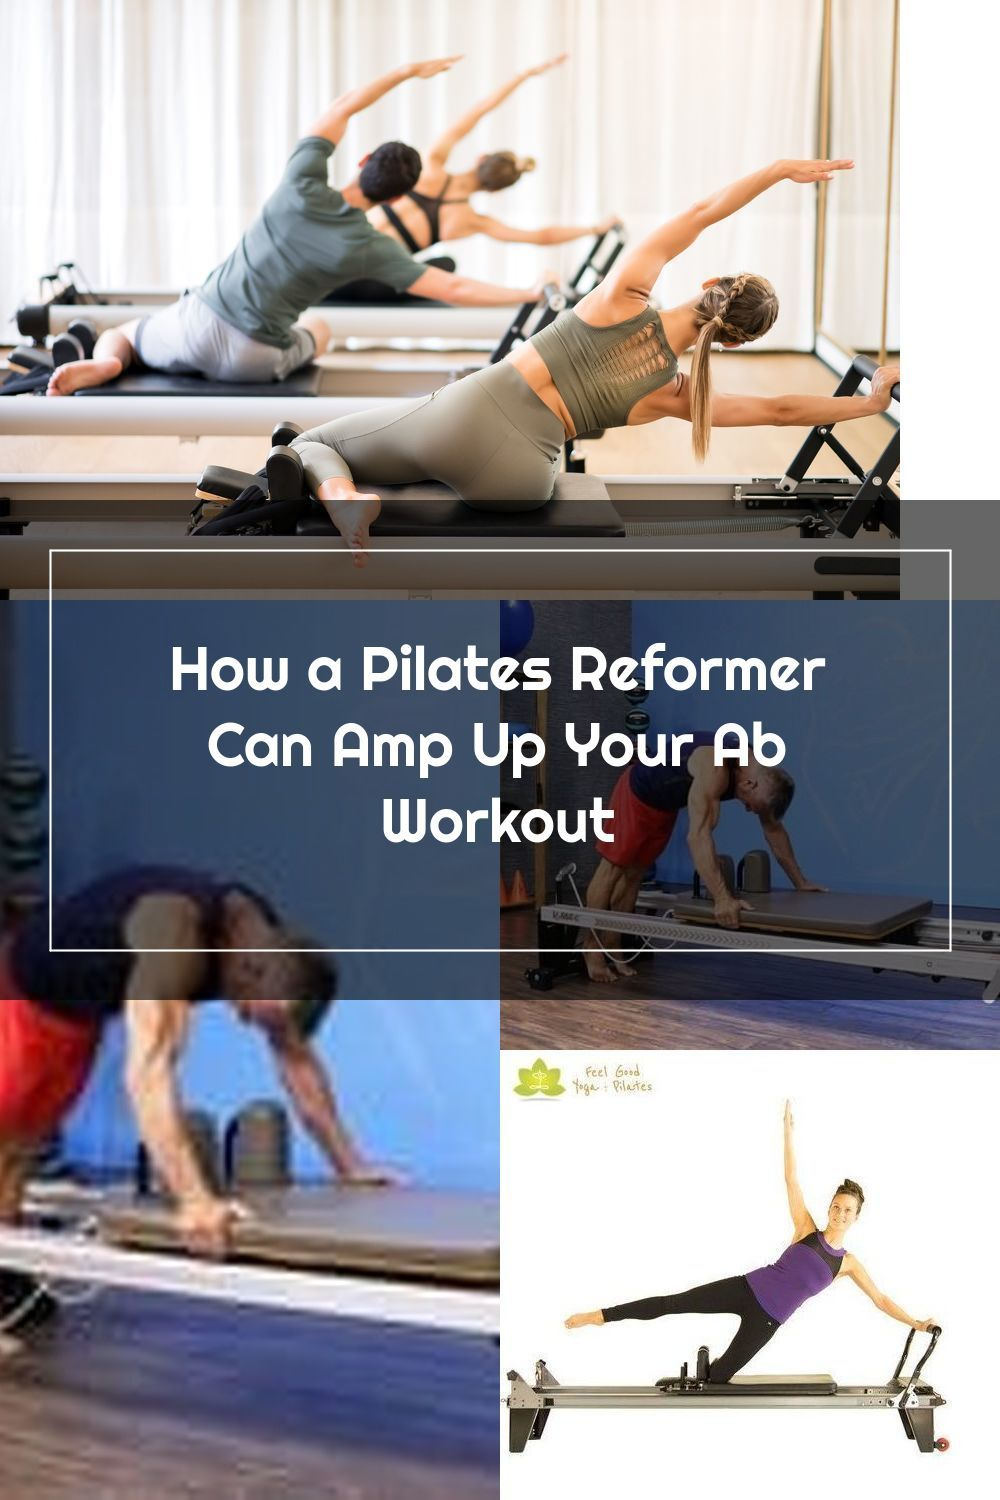 How A Pilates Reformer Can Amp Up Your Ab Workout In 2020 Pilates Reformer Abs Workout Pilates Reformer Exercises